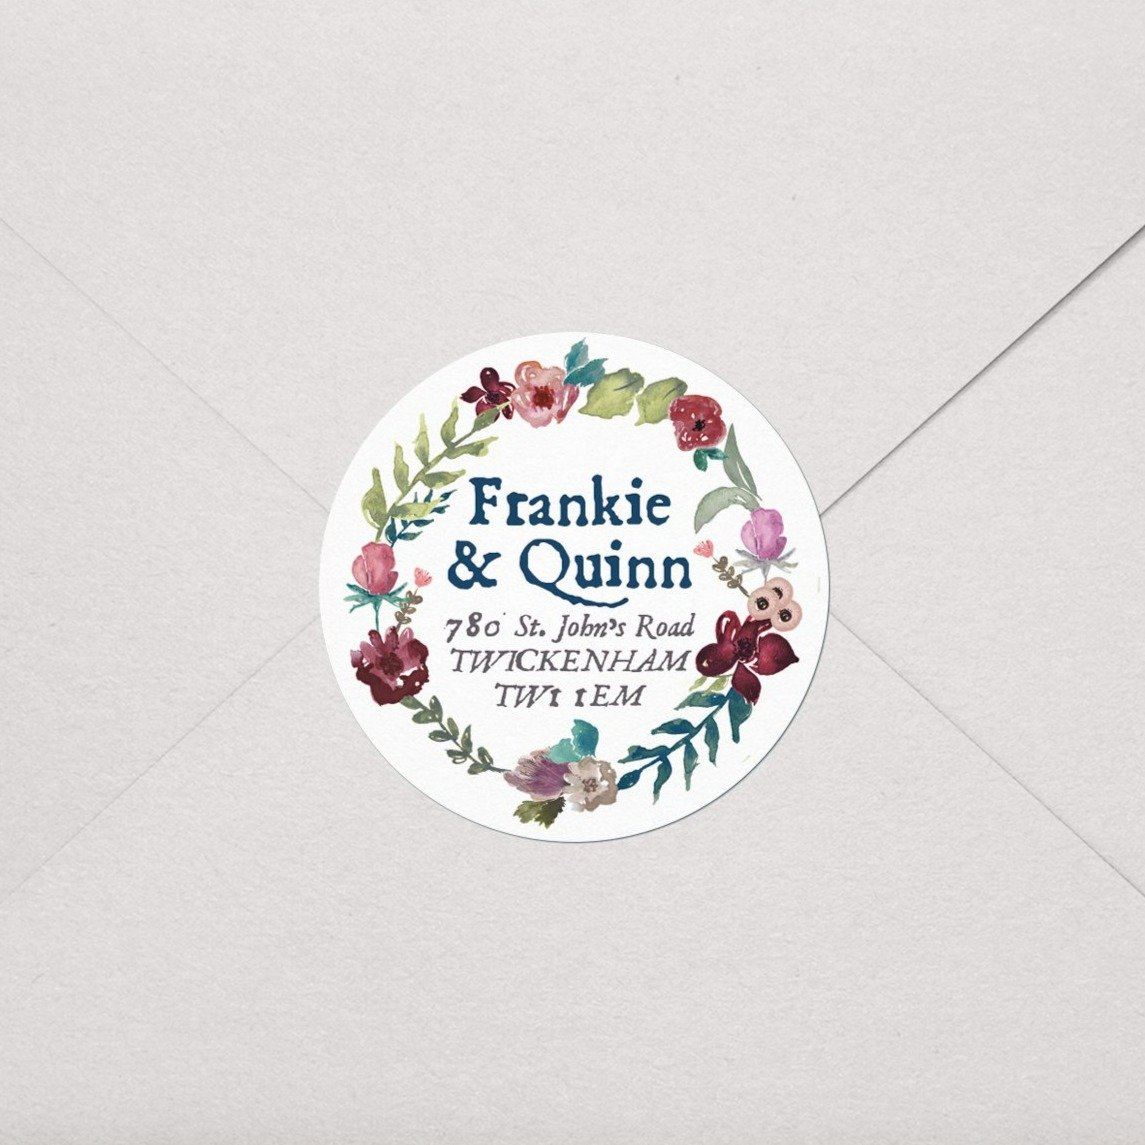 Burgundy & Teal Floral Wreath Labels